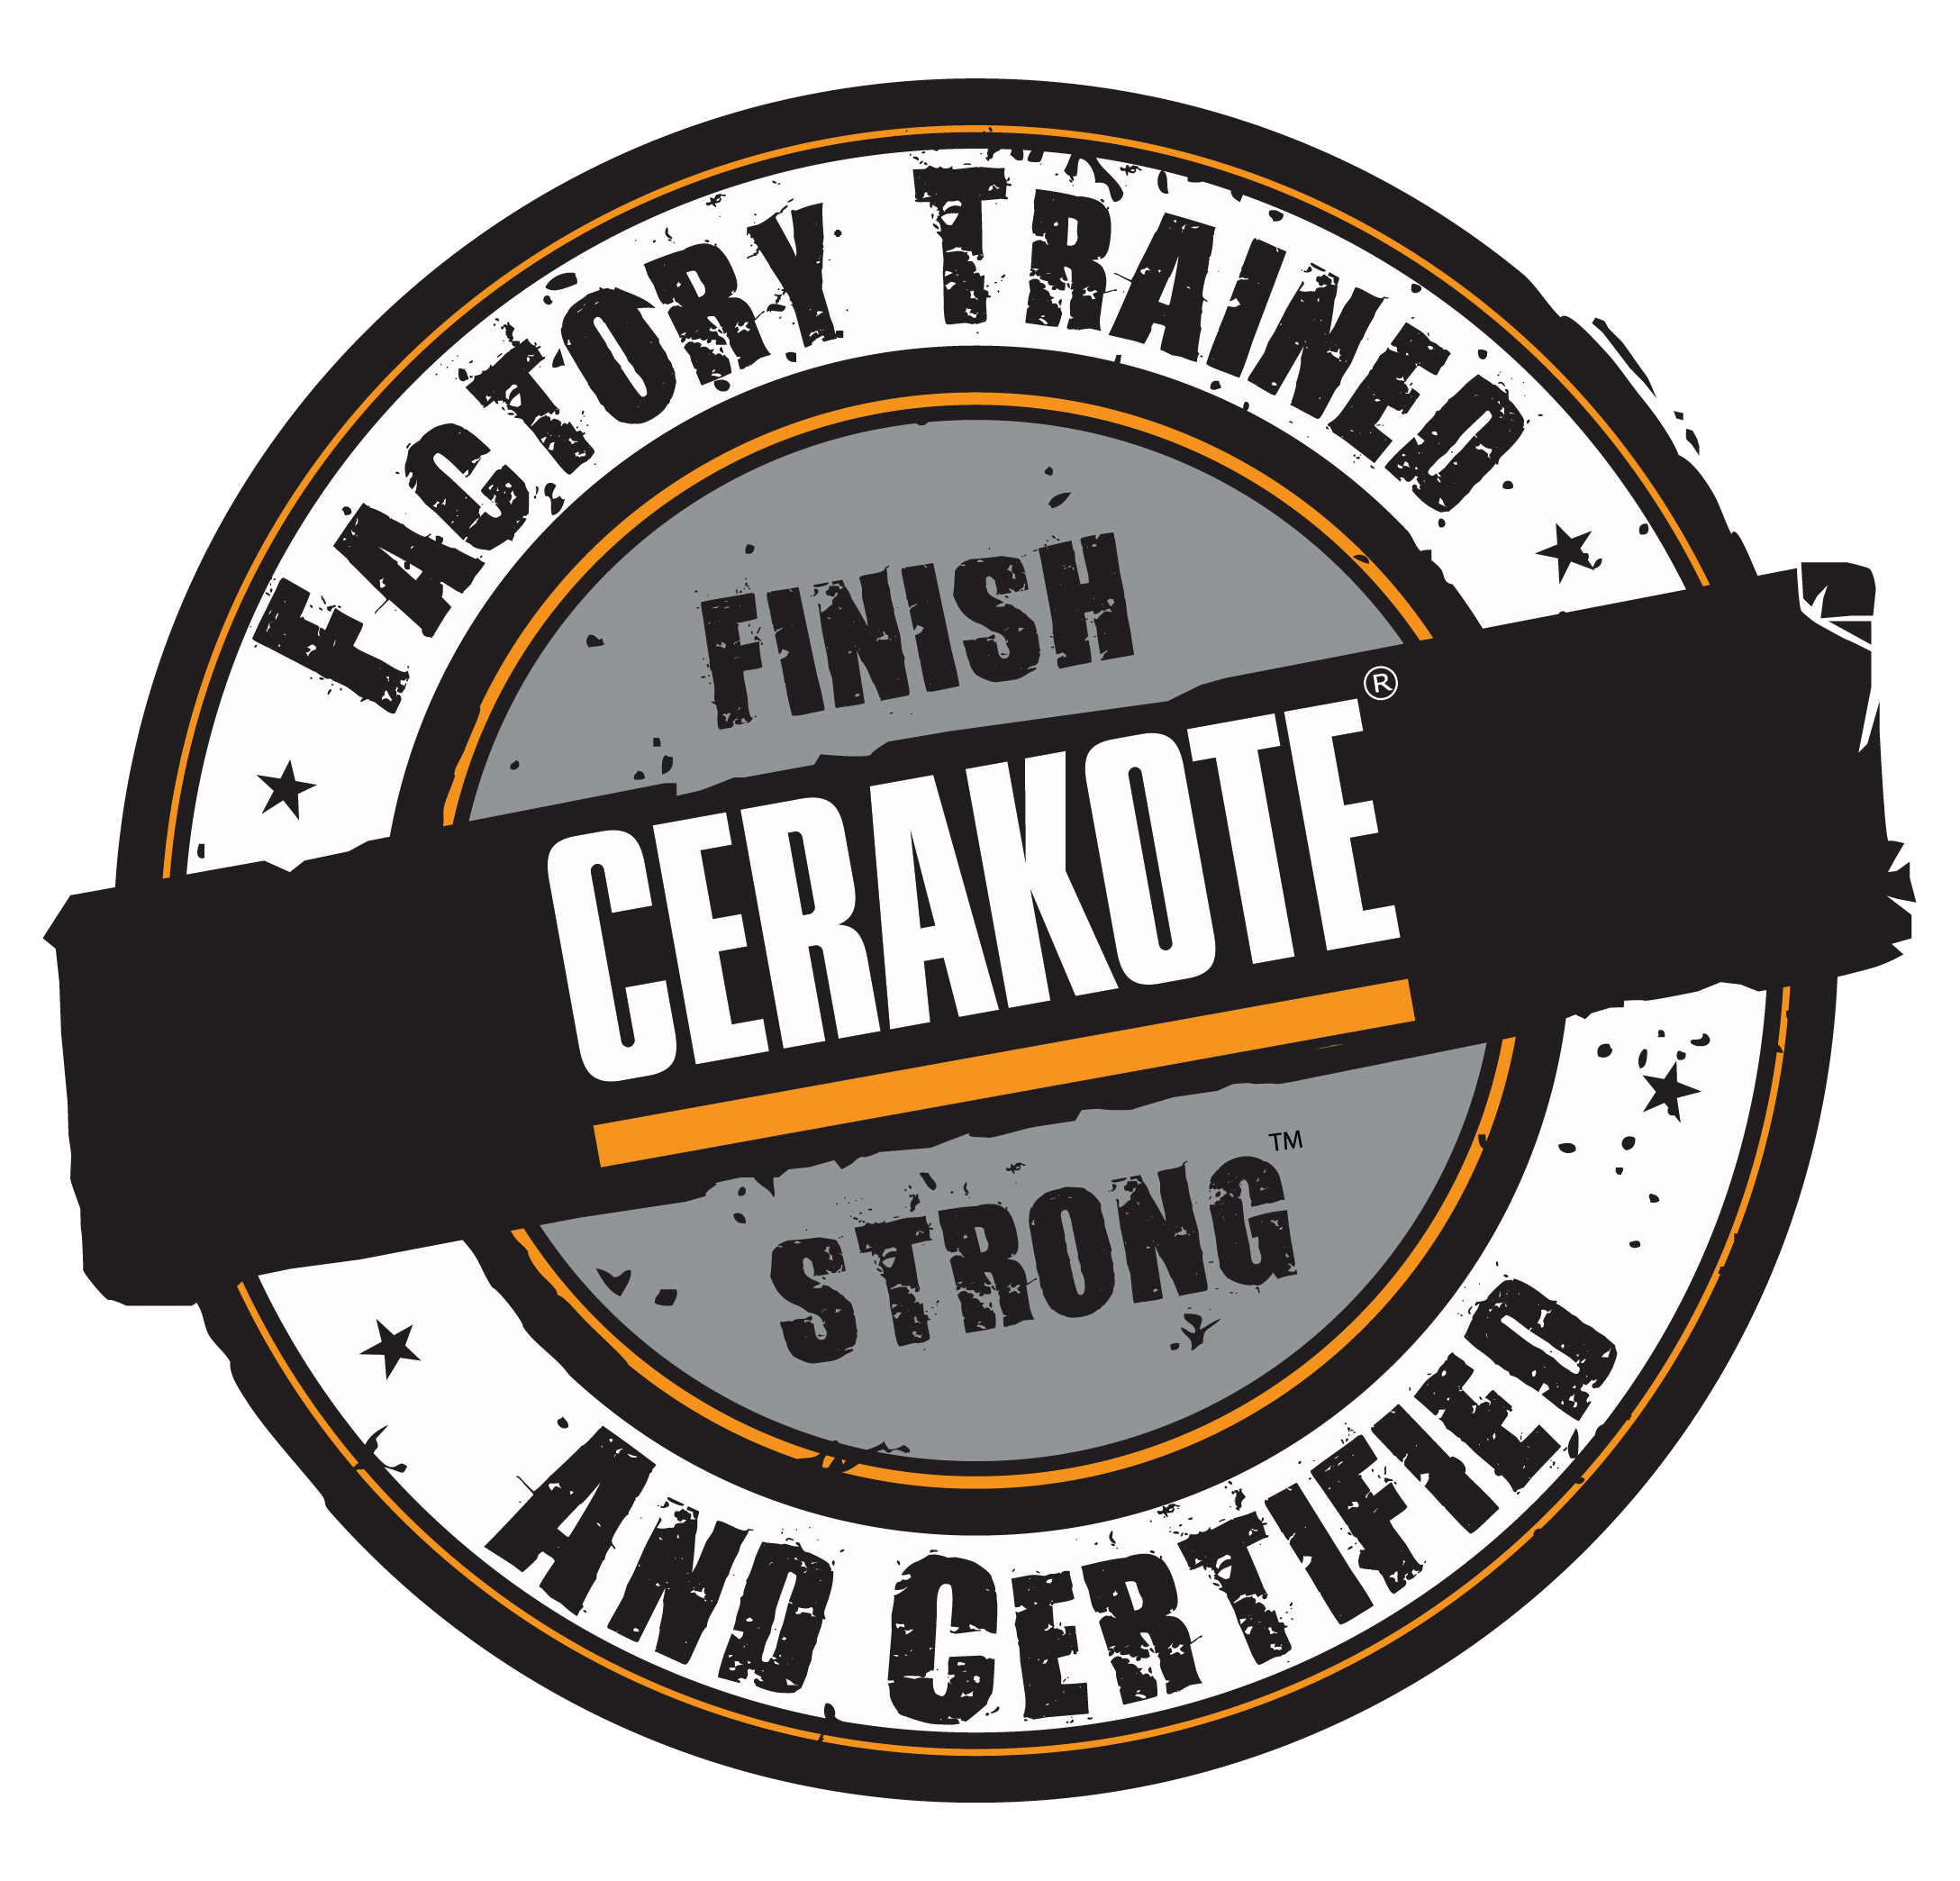 Camogun is Cerakote Trained and Certified!